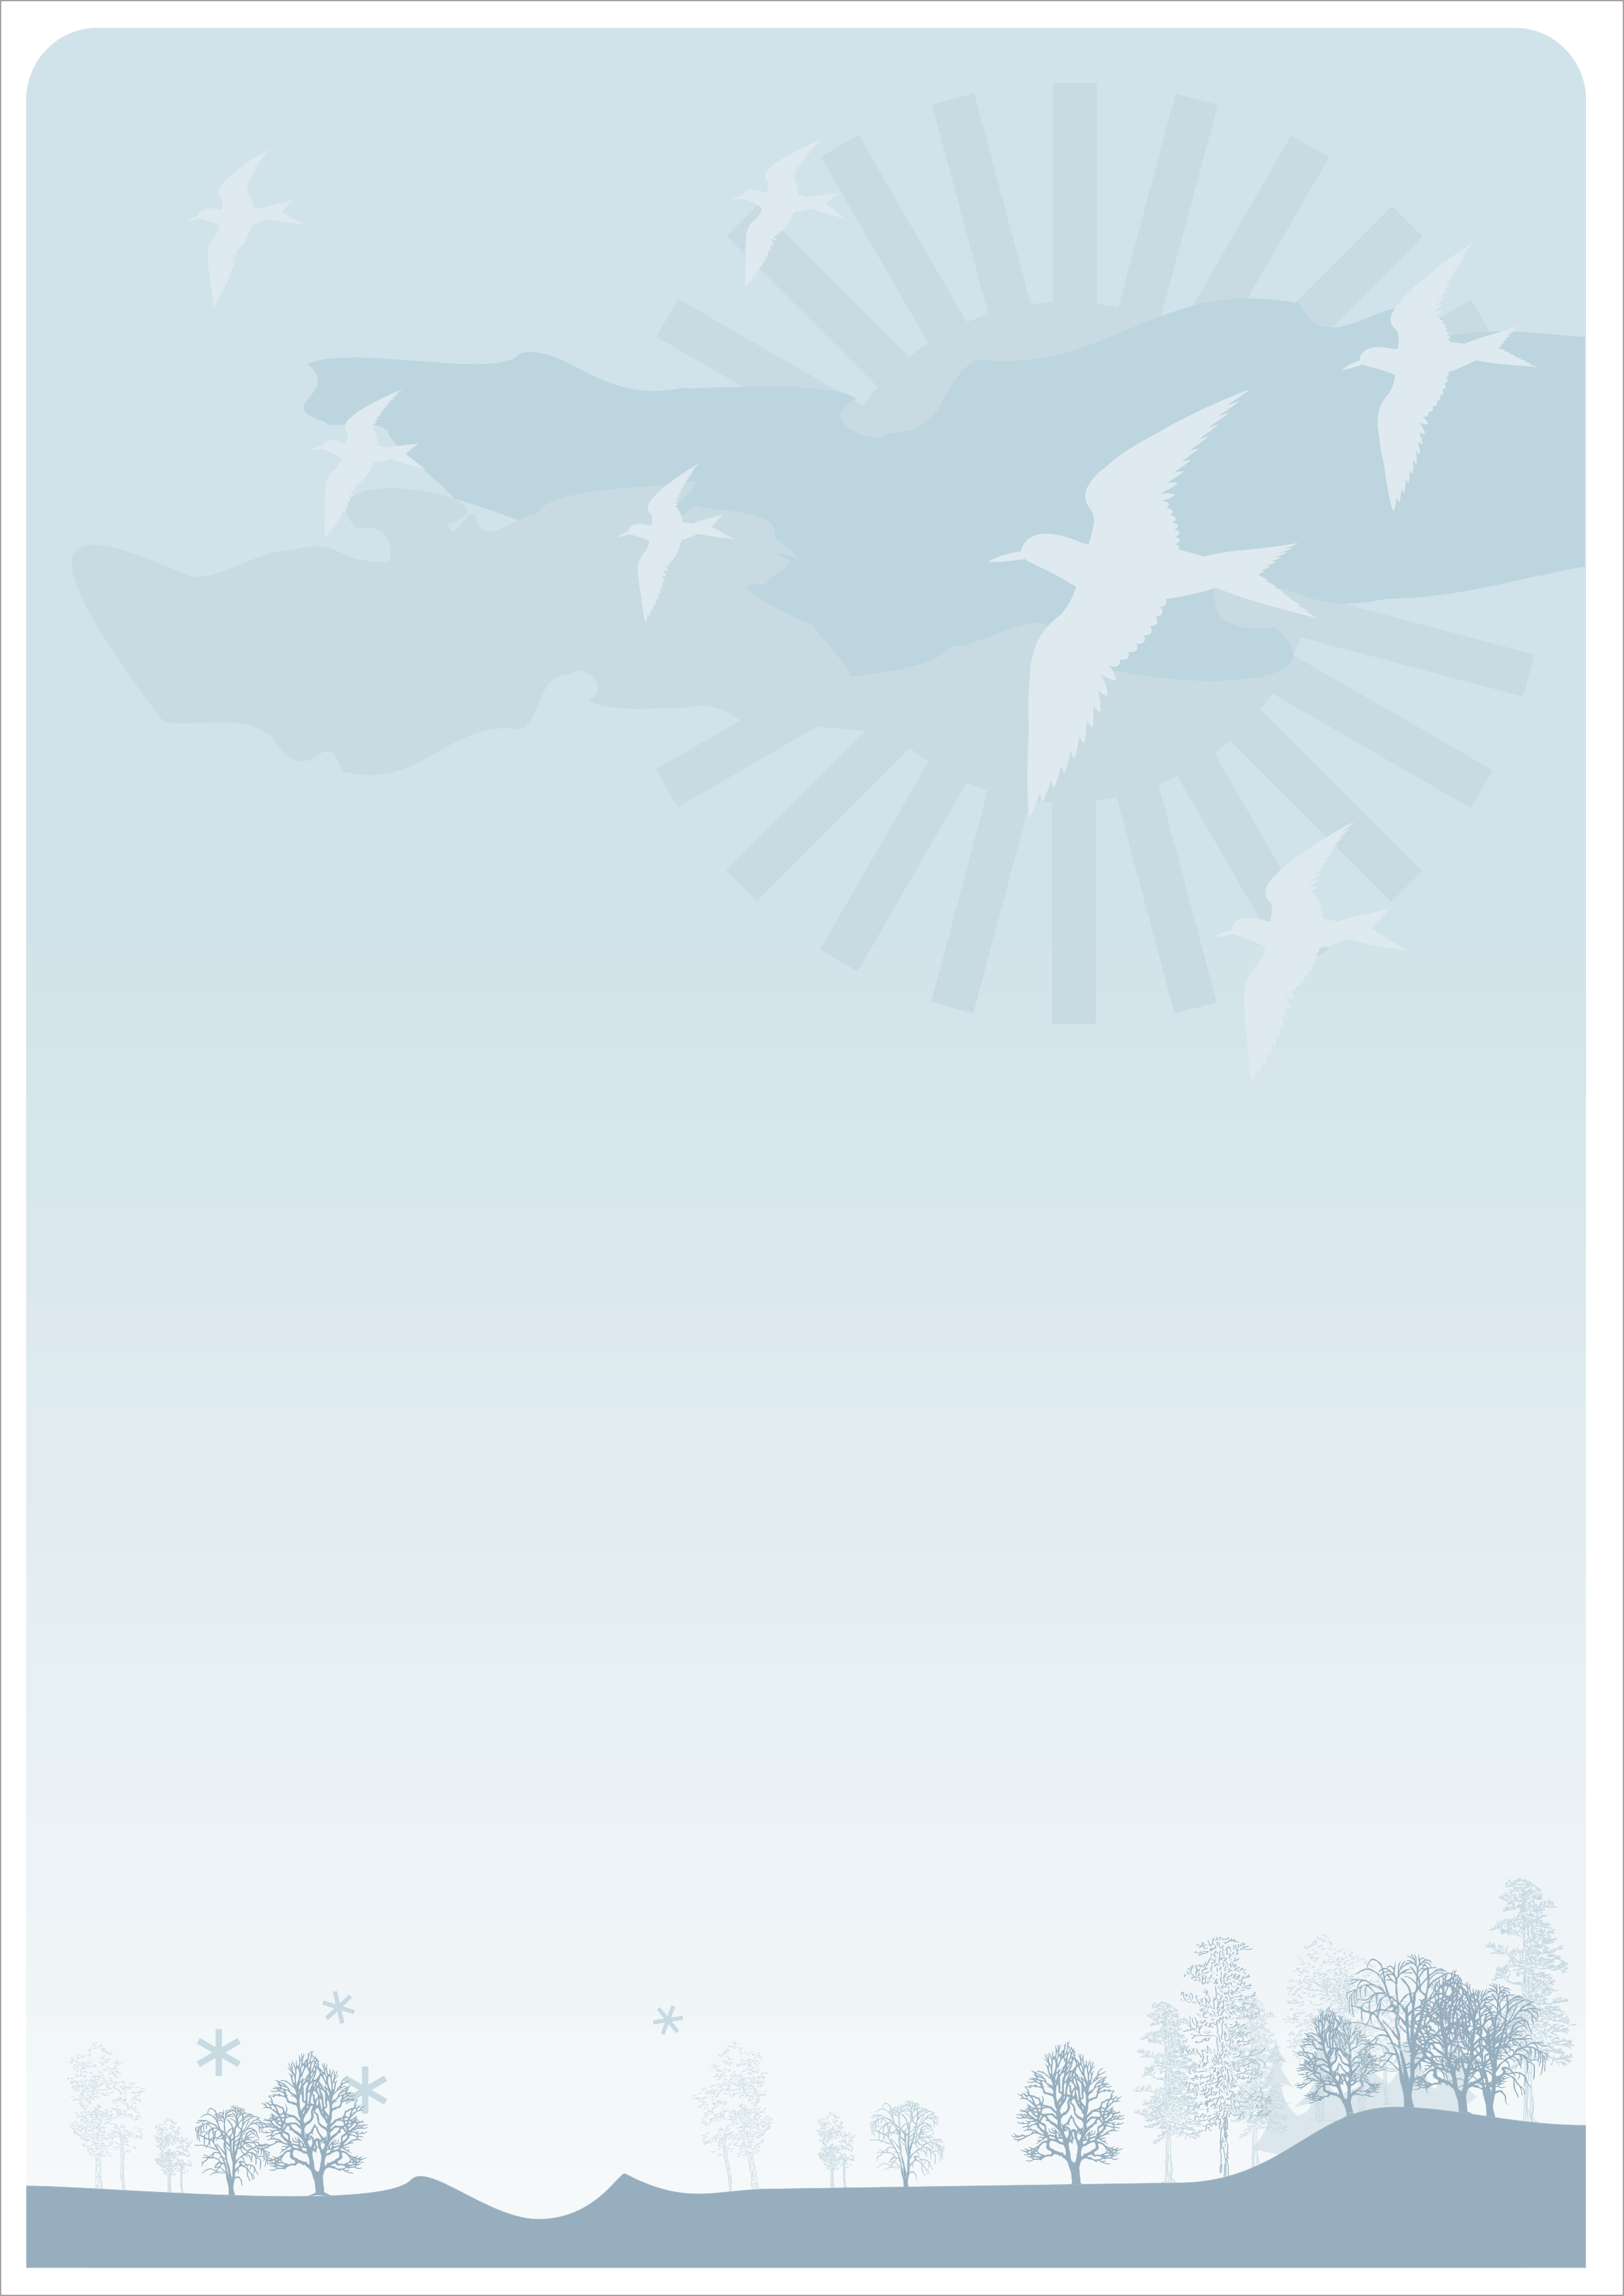 Letter Background Birds by leboef 2480x3507